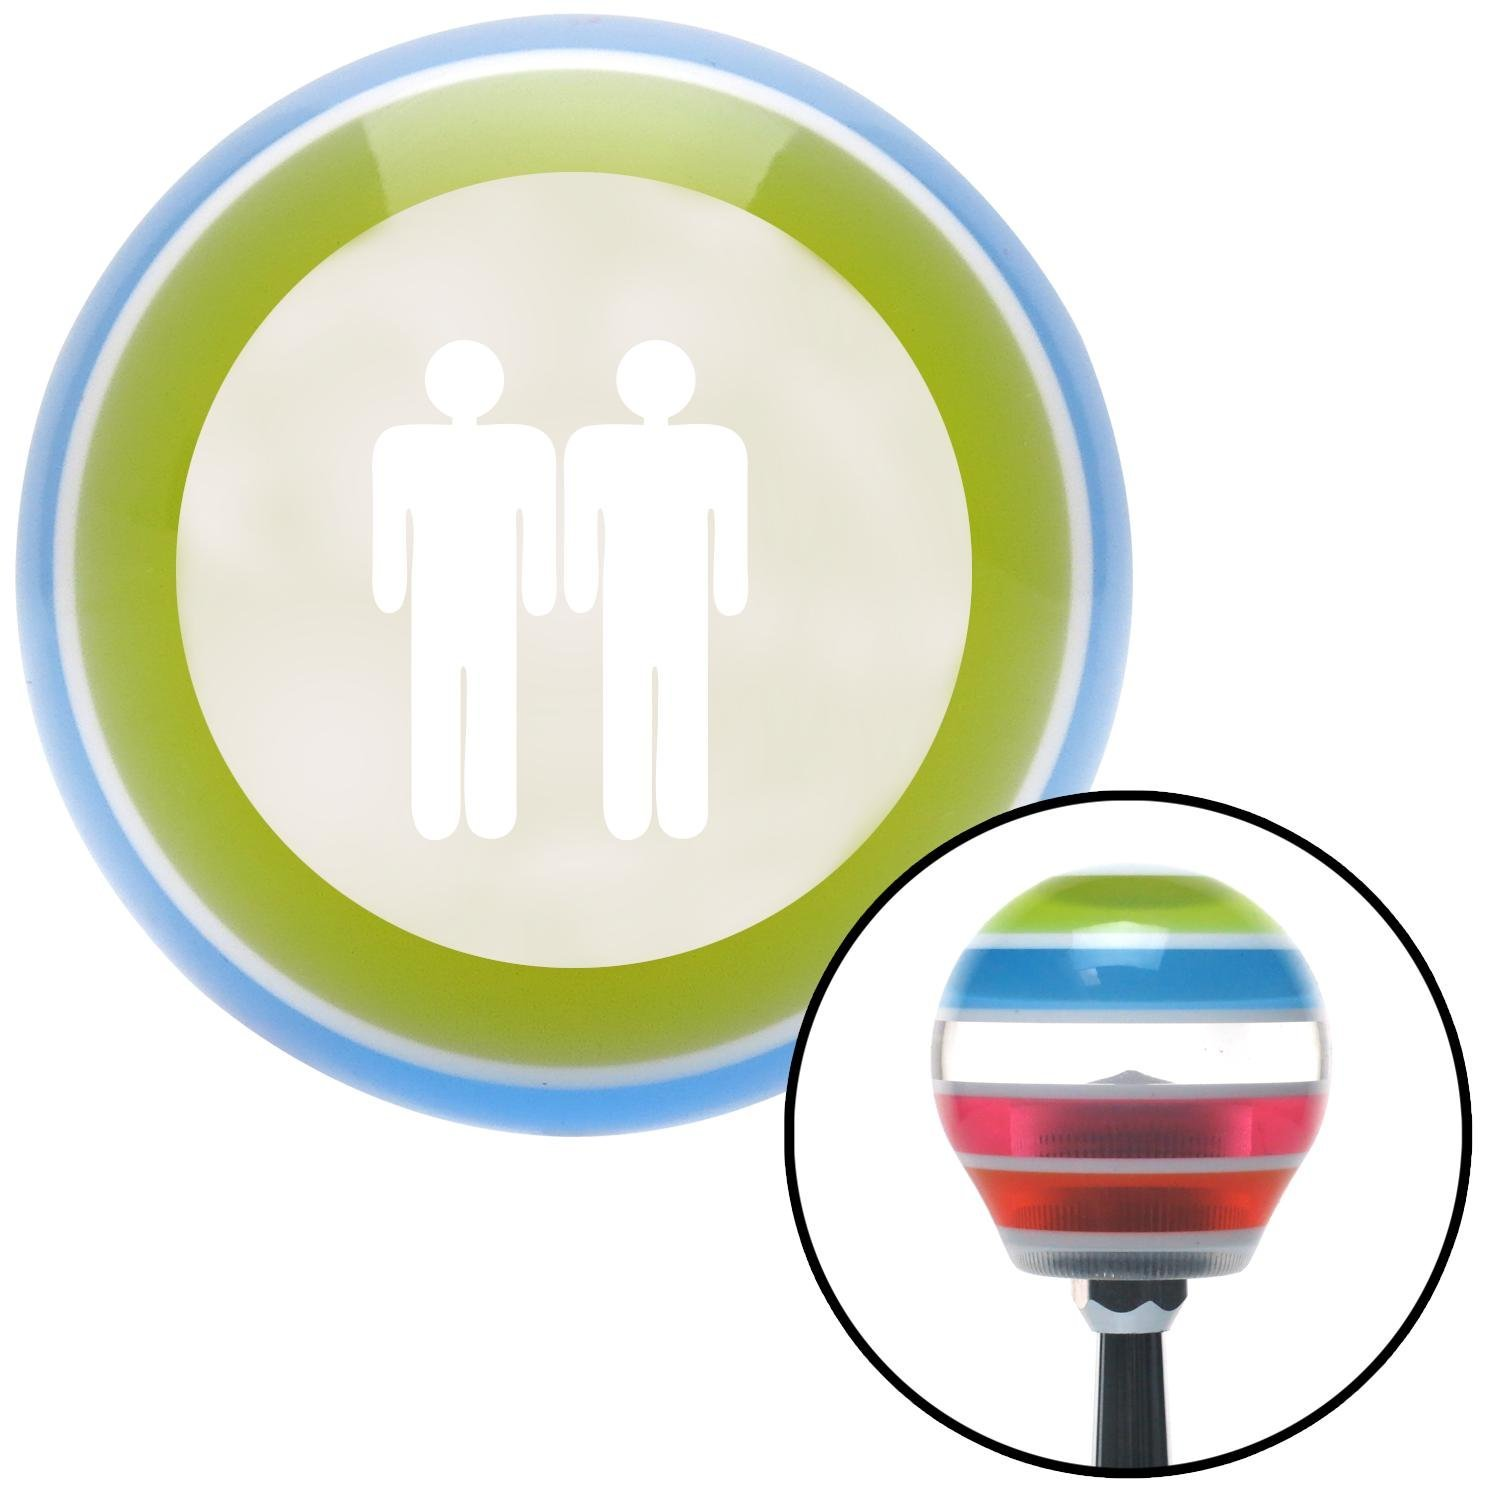 American Shifter 135794 Stripe Shift Knob with M16 x 1.5 Insert White Man Standing by Man